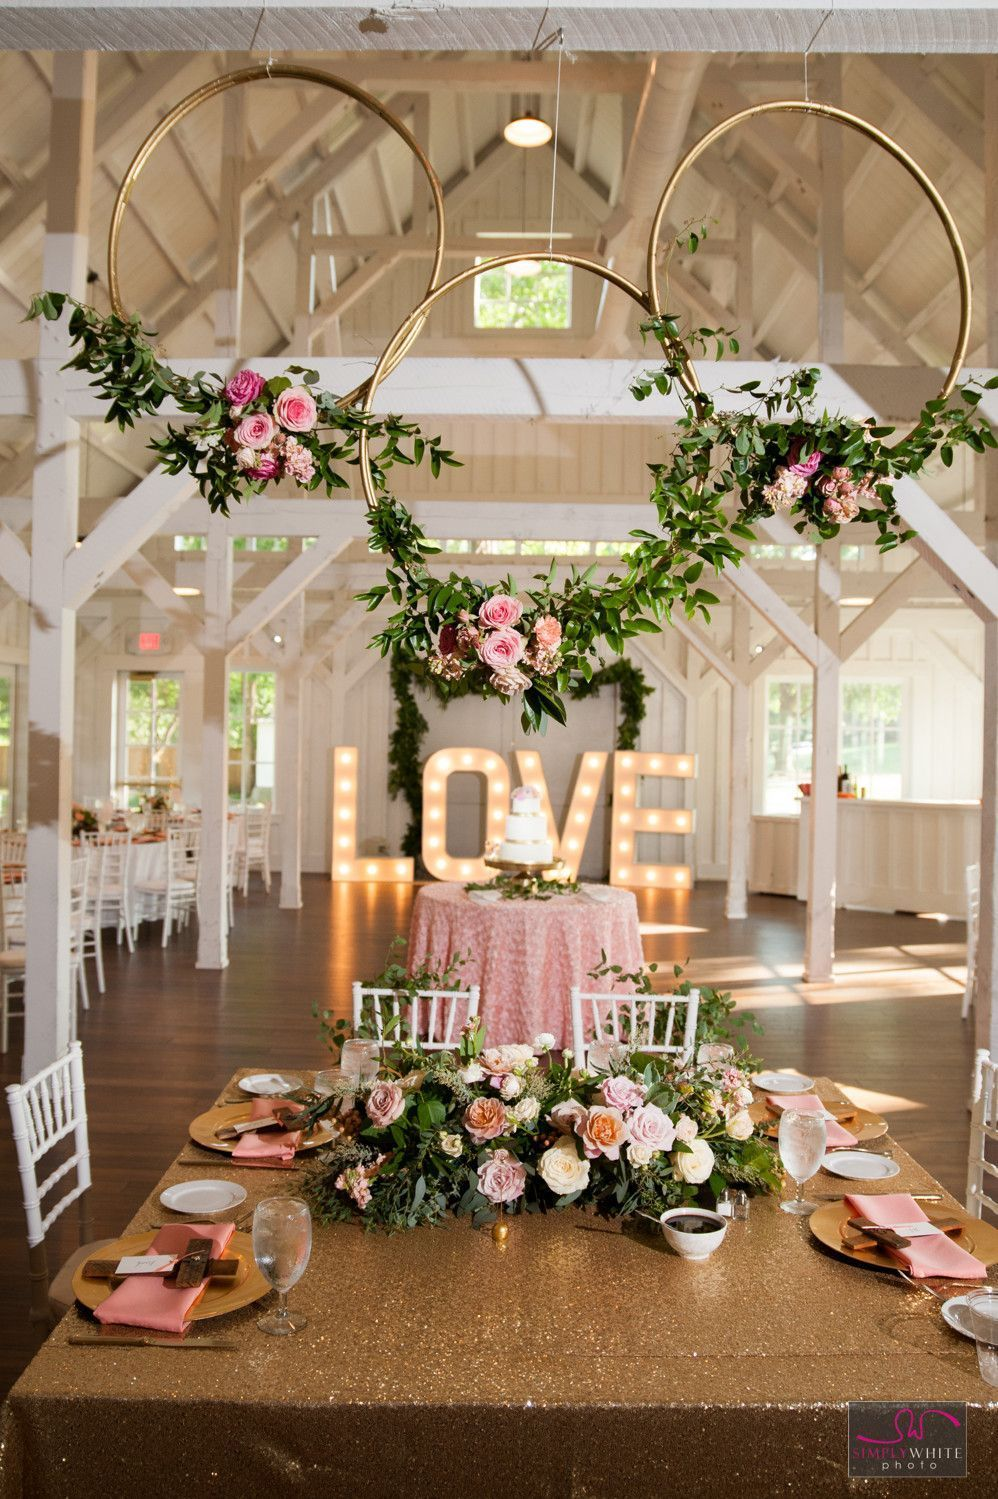 20 Chic Trendy Ideas To Decorate Your Wedding With Flowers